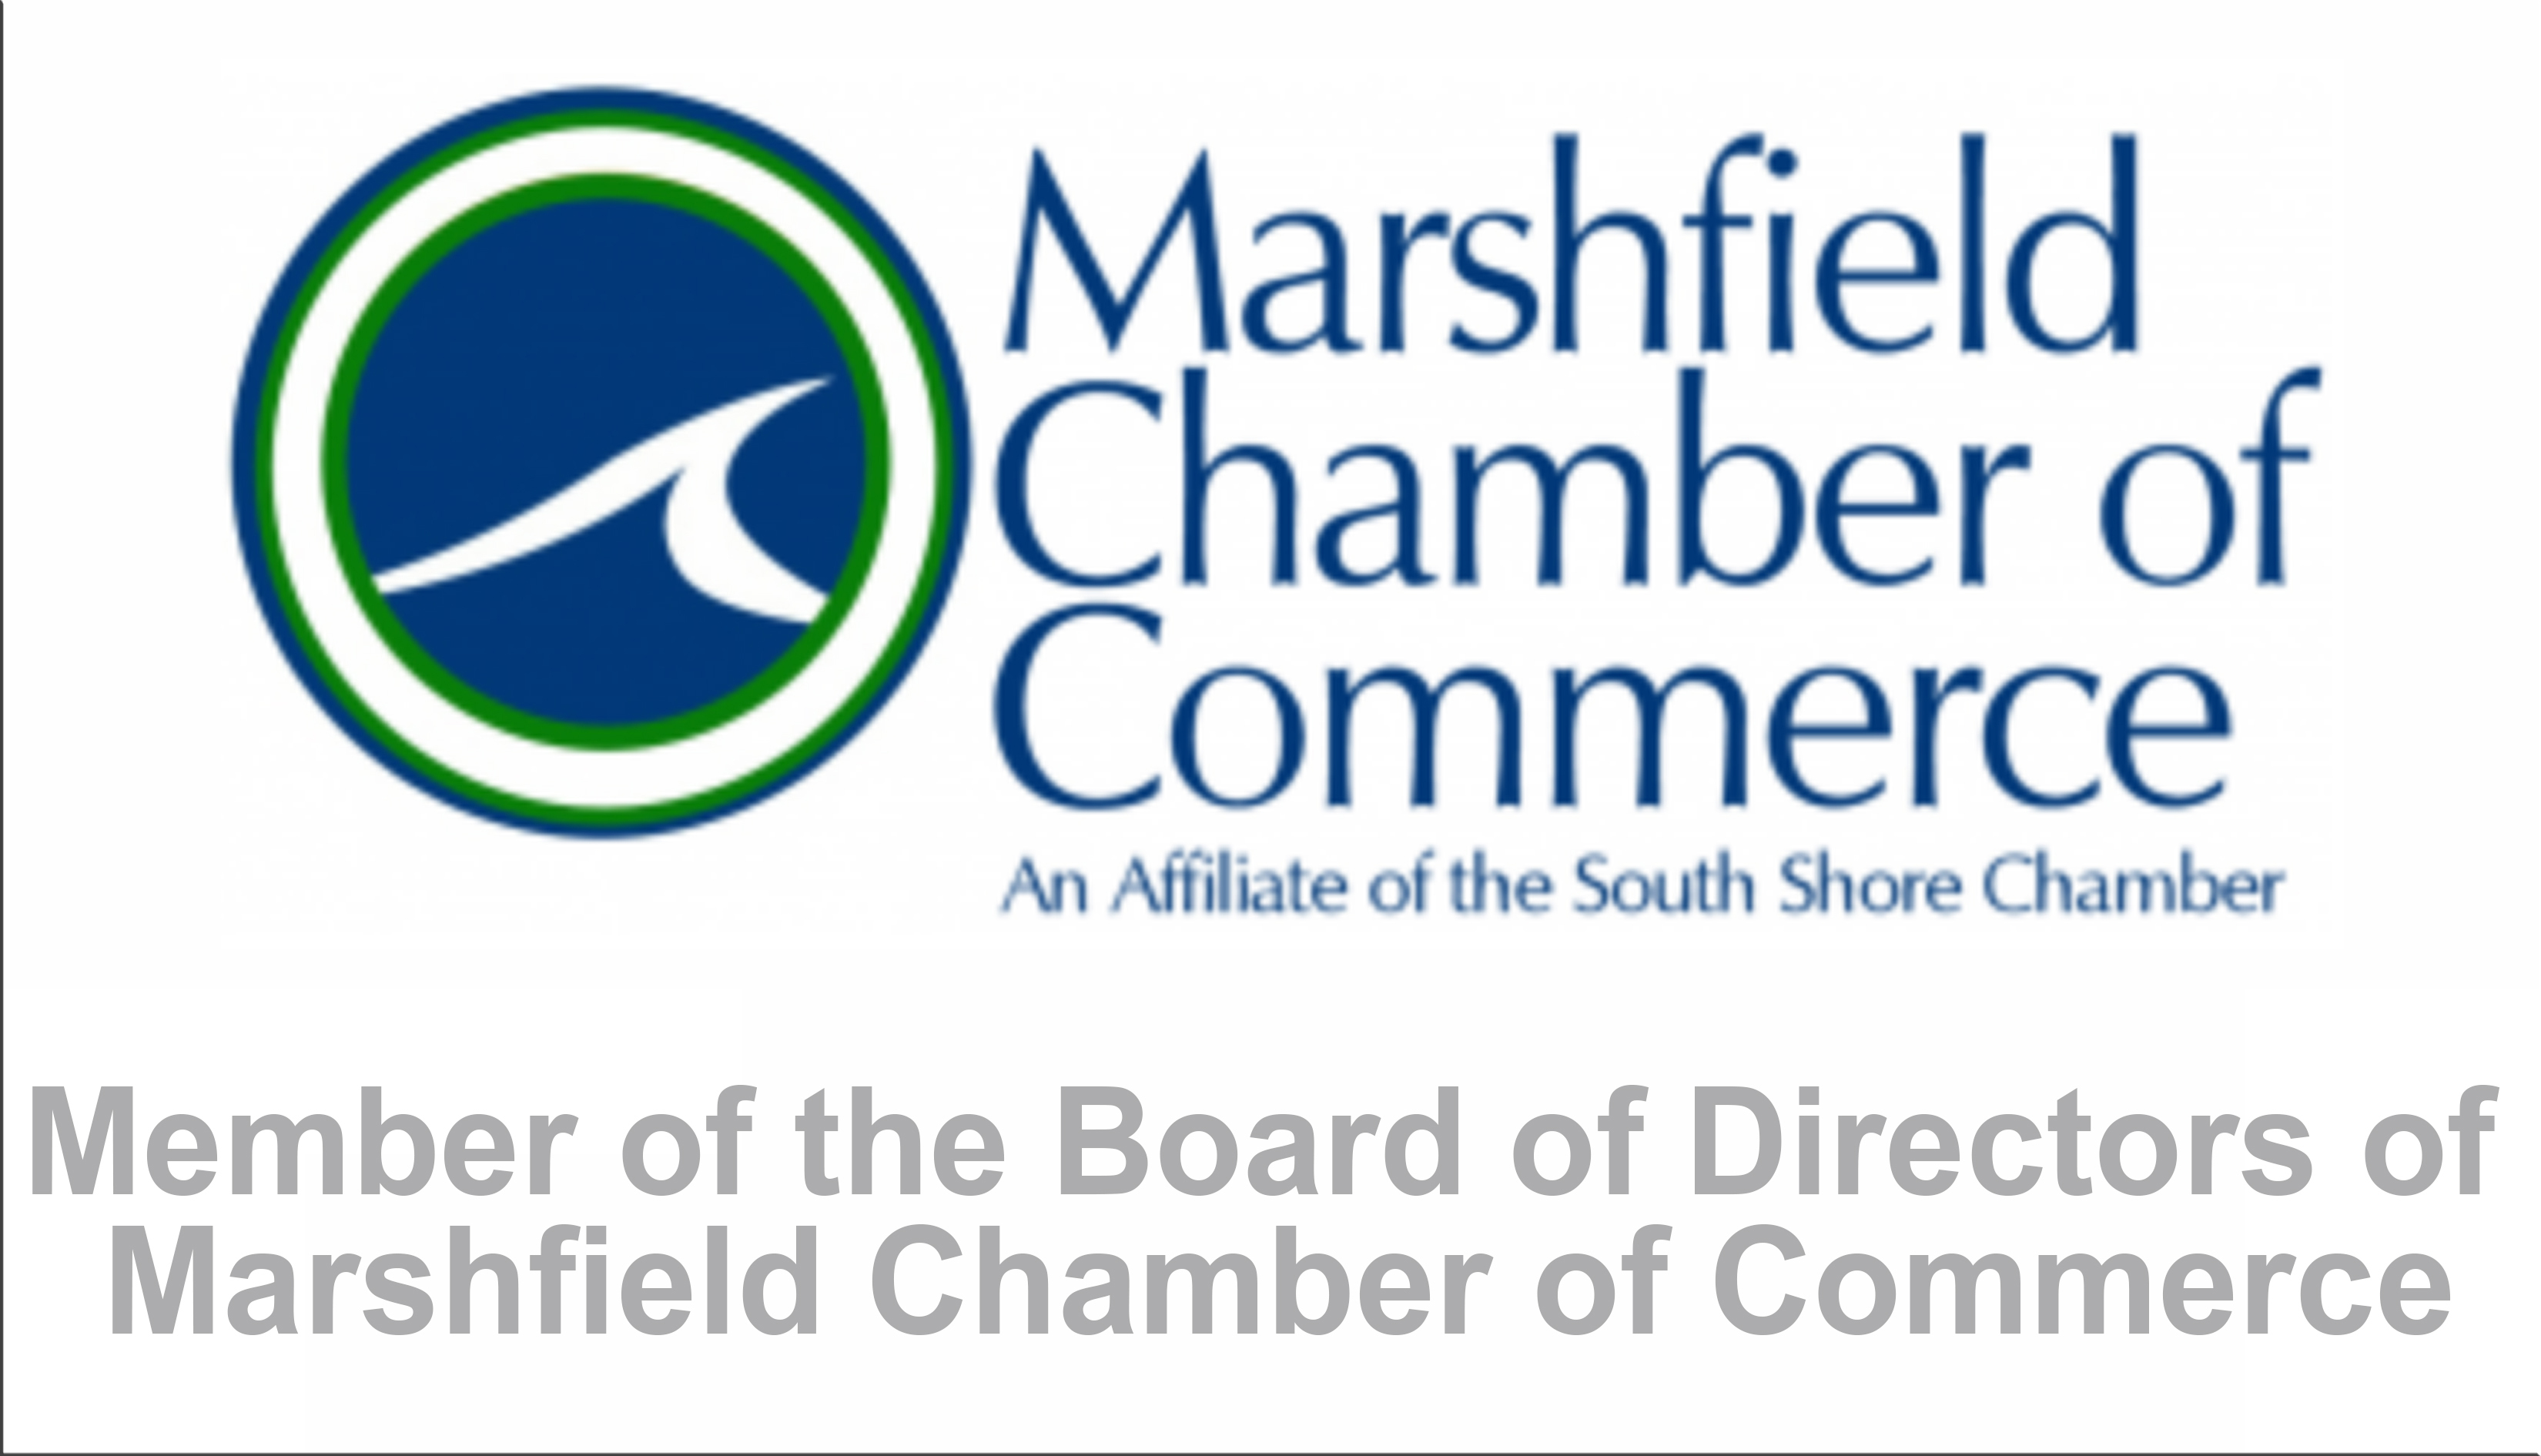 Member of the Board of Directors of Marshfield Chamber of Commerce